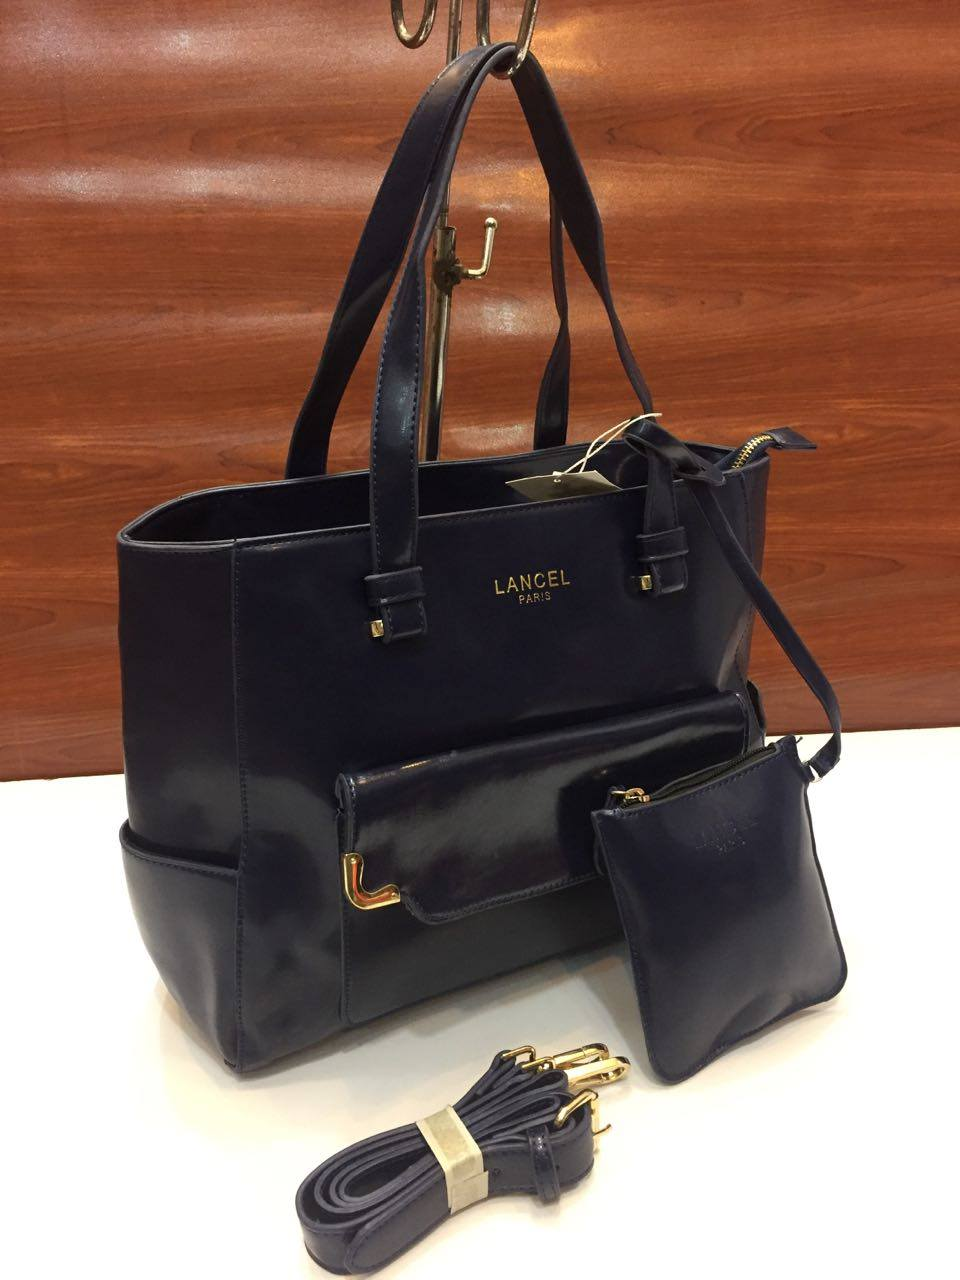 Imported Lancel paris Hand Bags